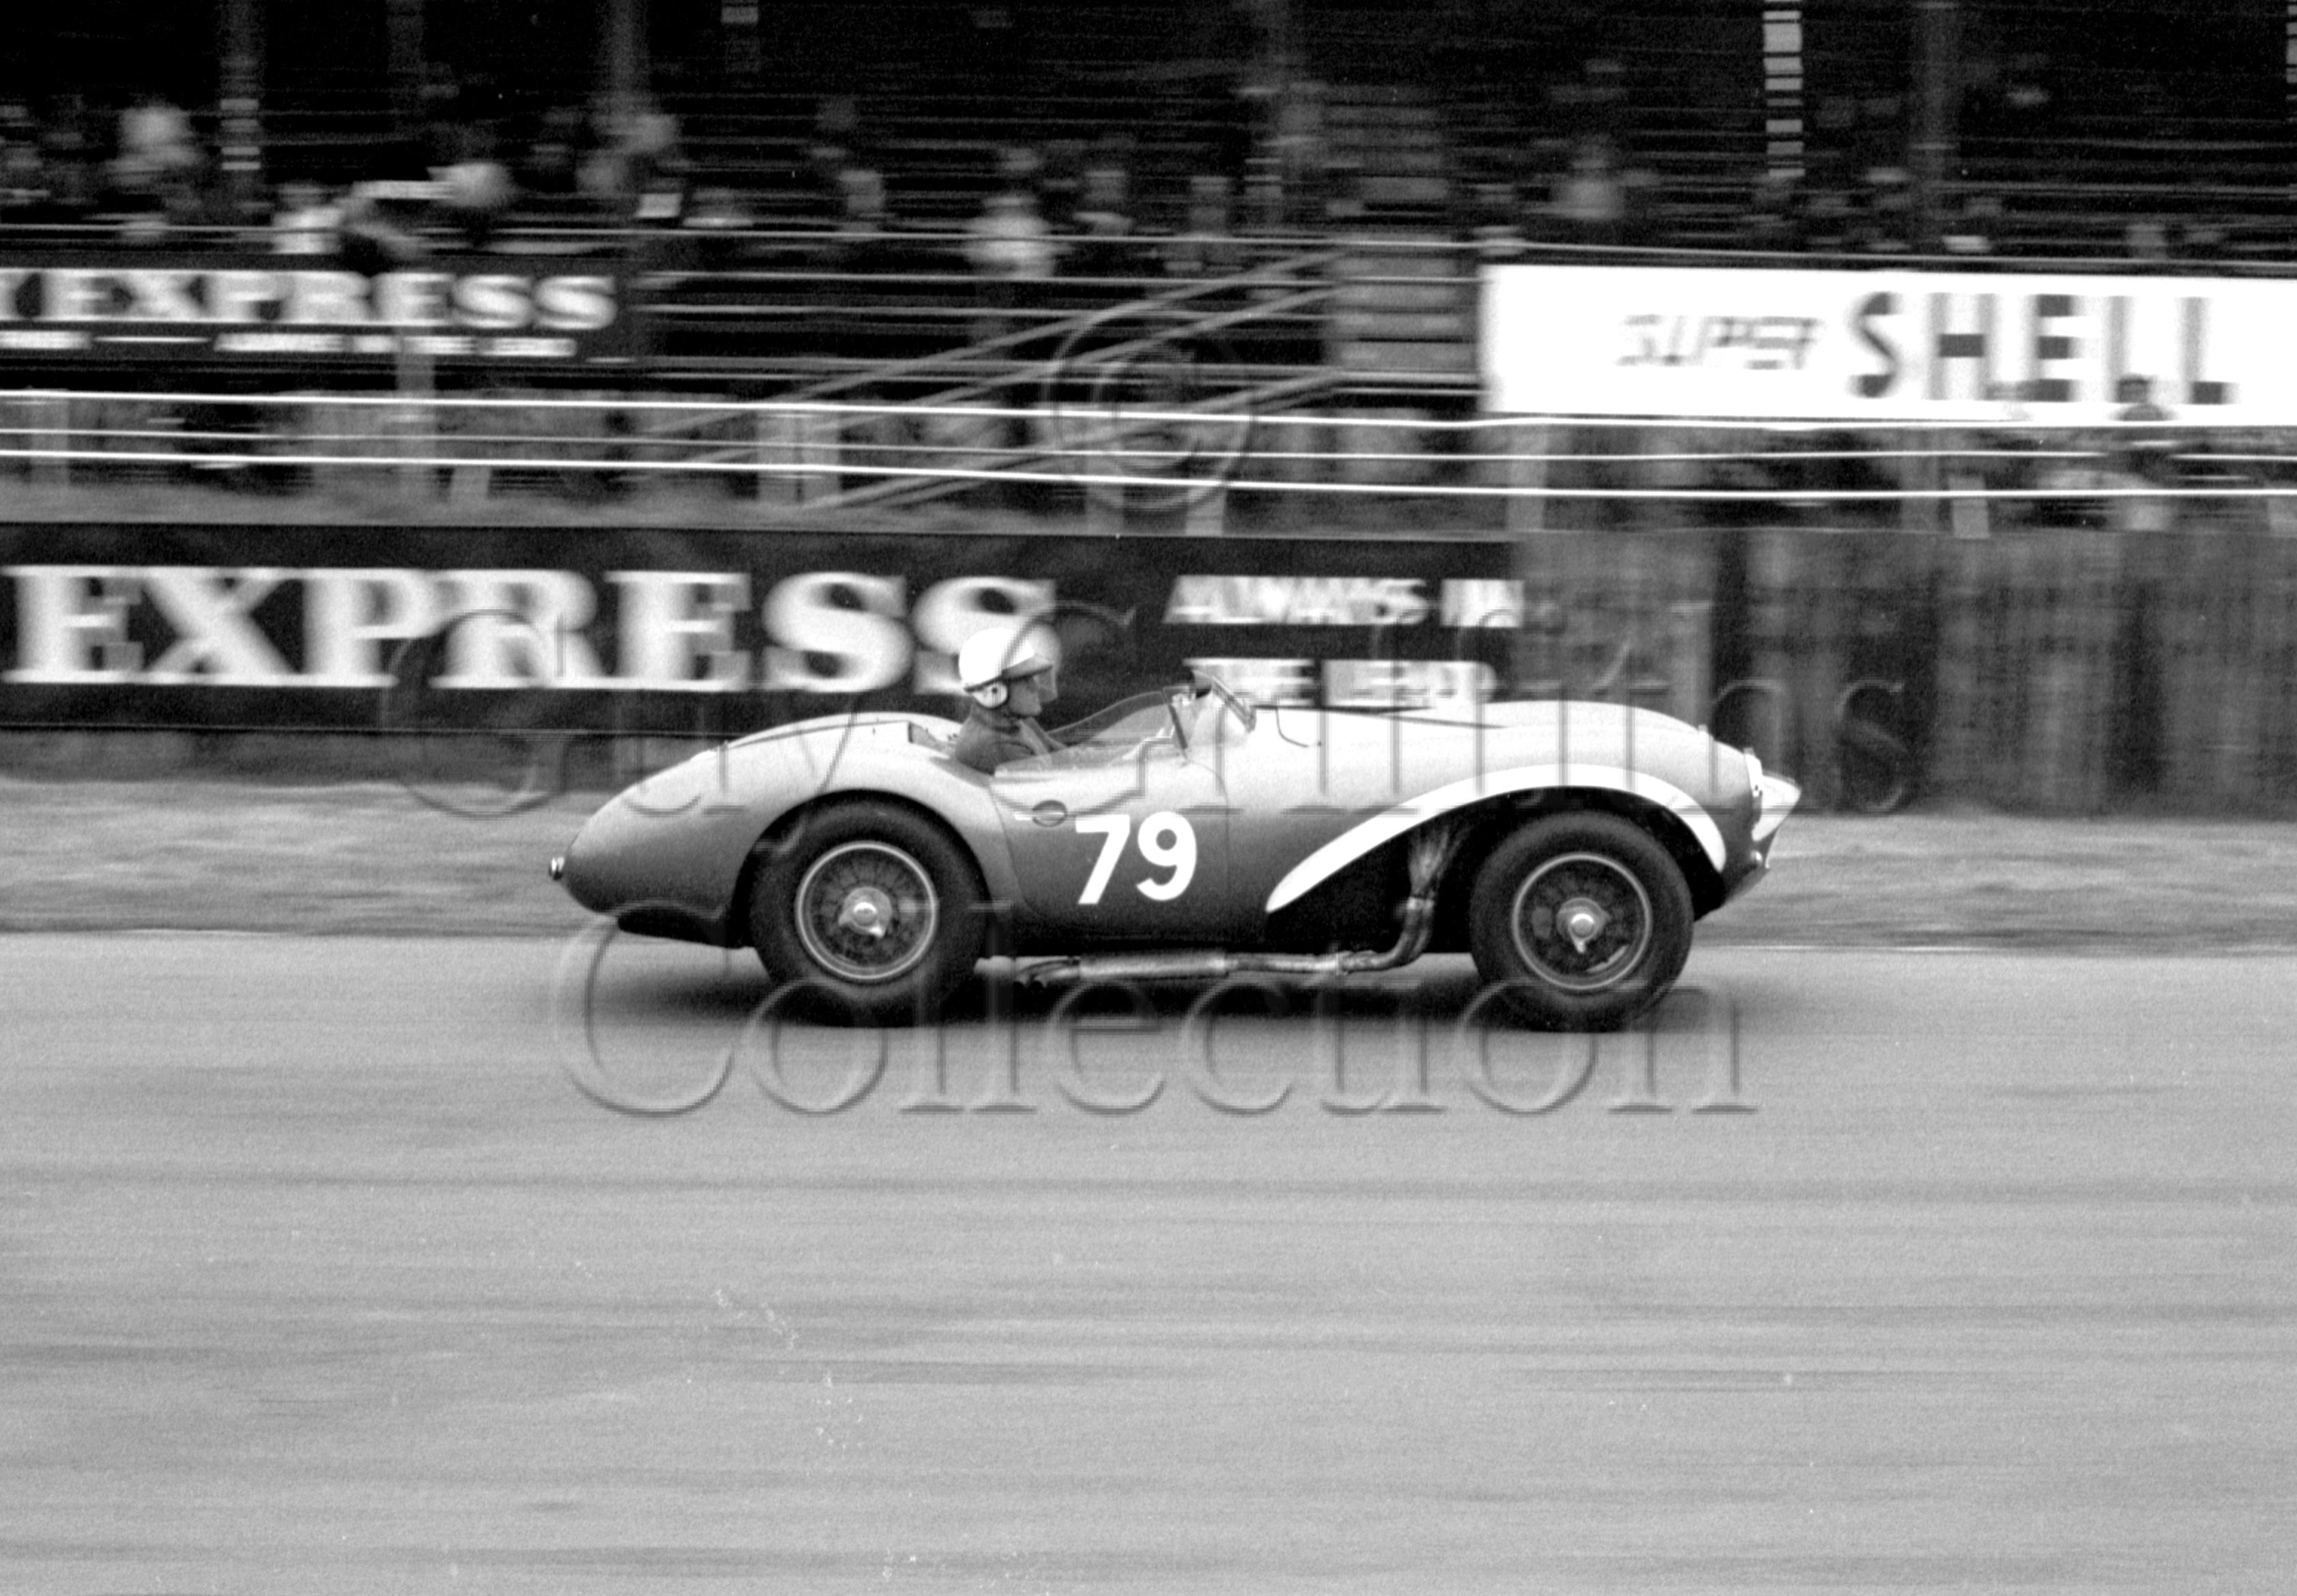 106-22–C-Aston–Aston-Martin-DB3S–Silverstone–24-06-1967.jpg - The Guy Griffiths Collection